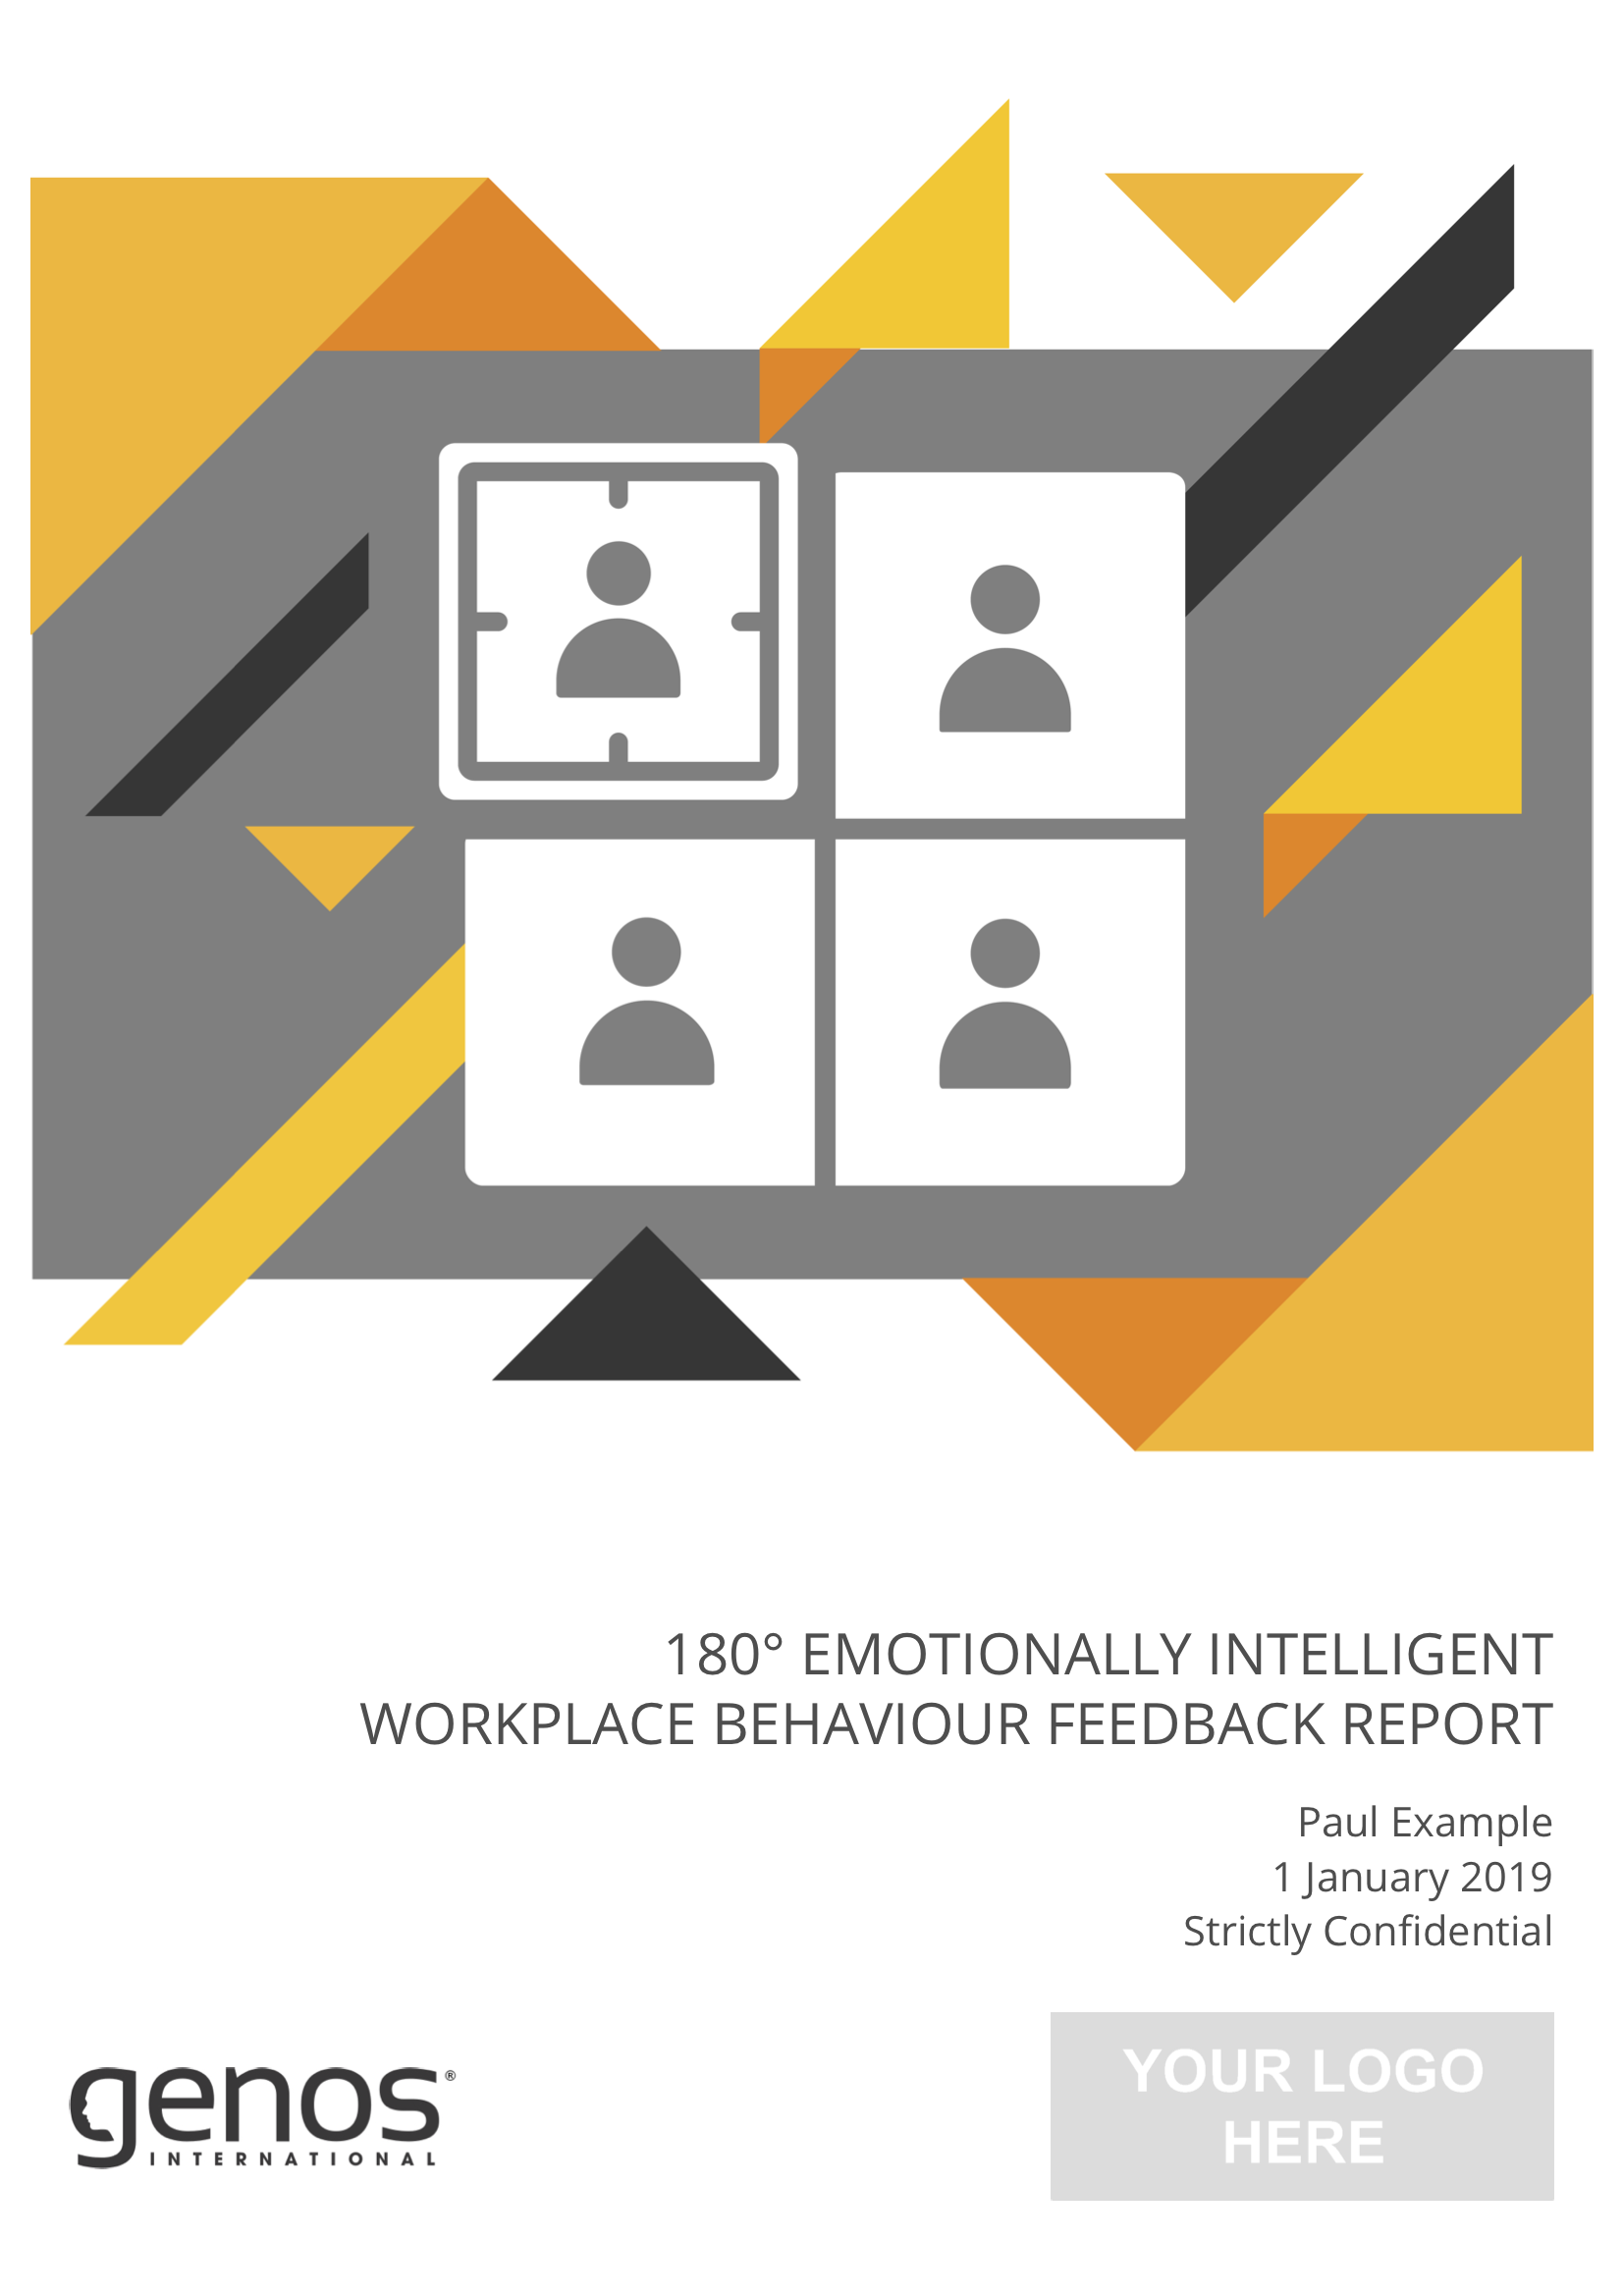 180° EI Workplace Behaviour Feedback Report